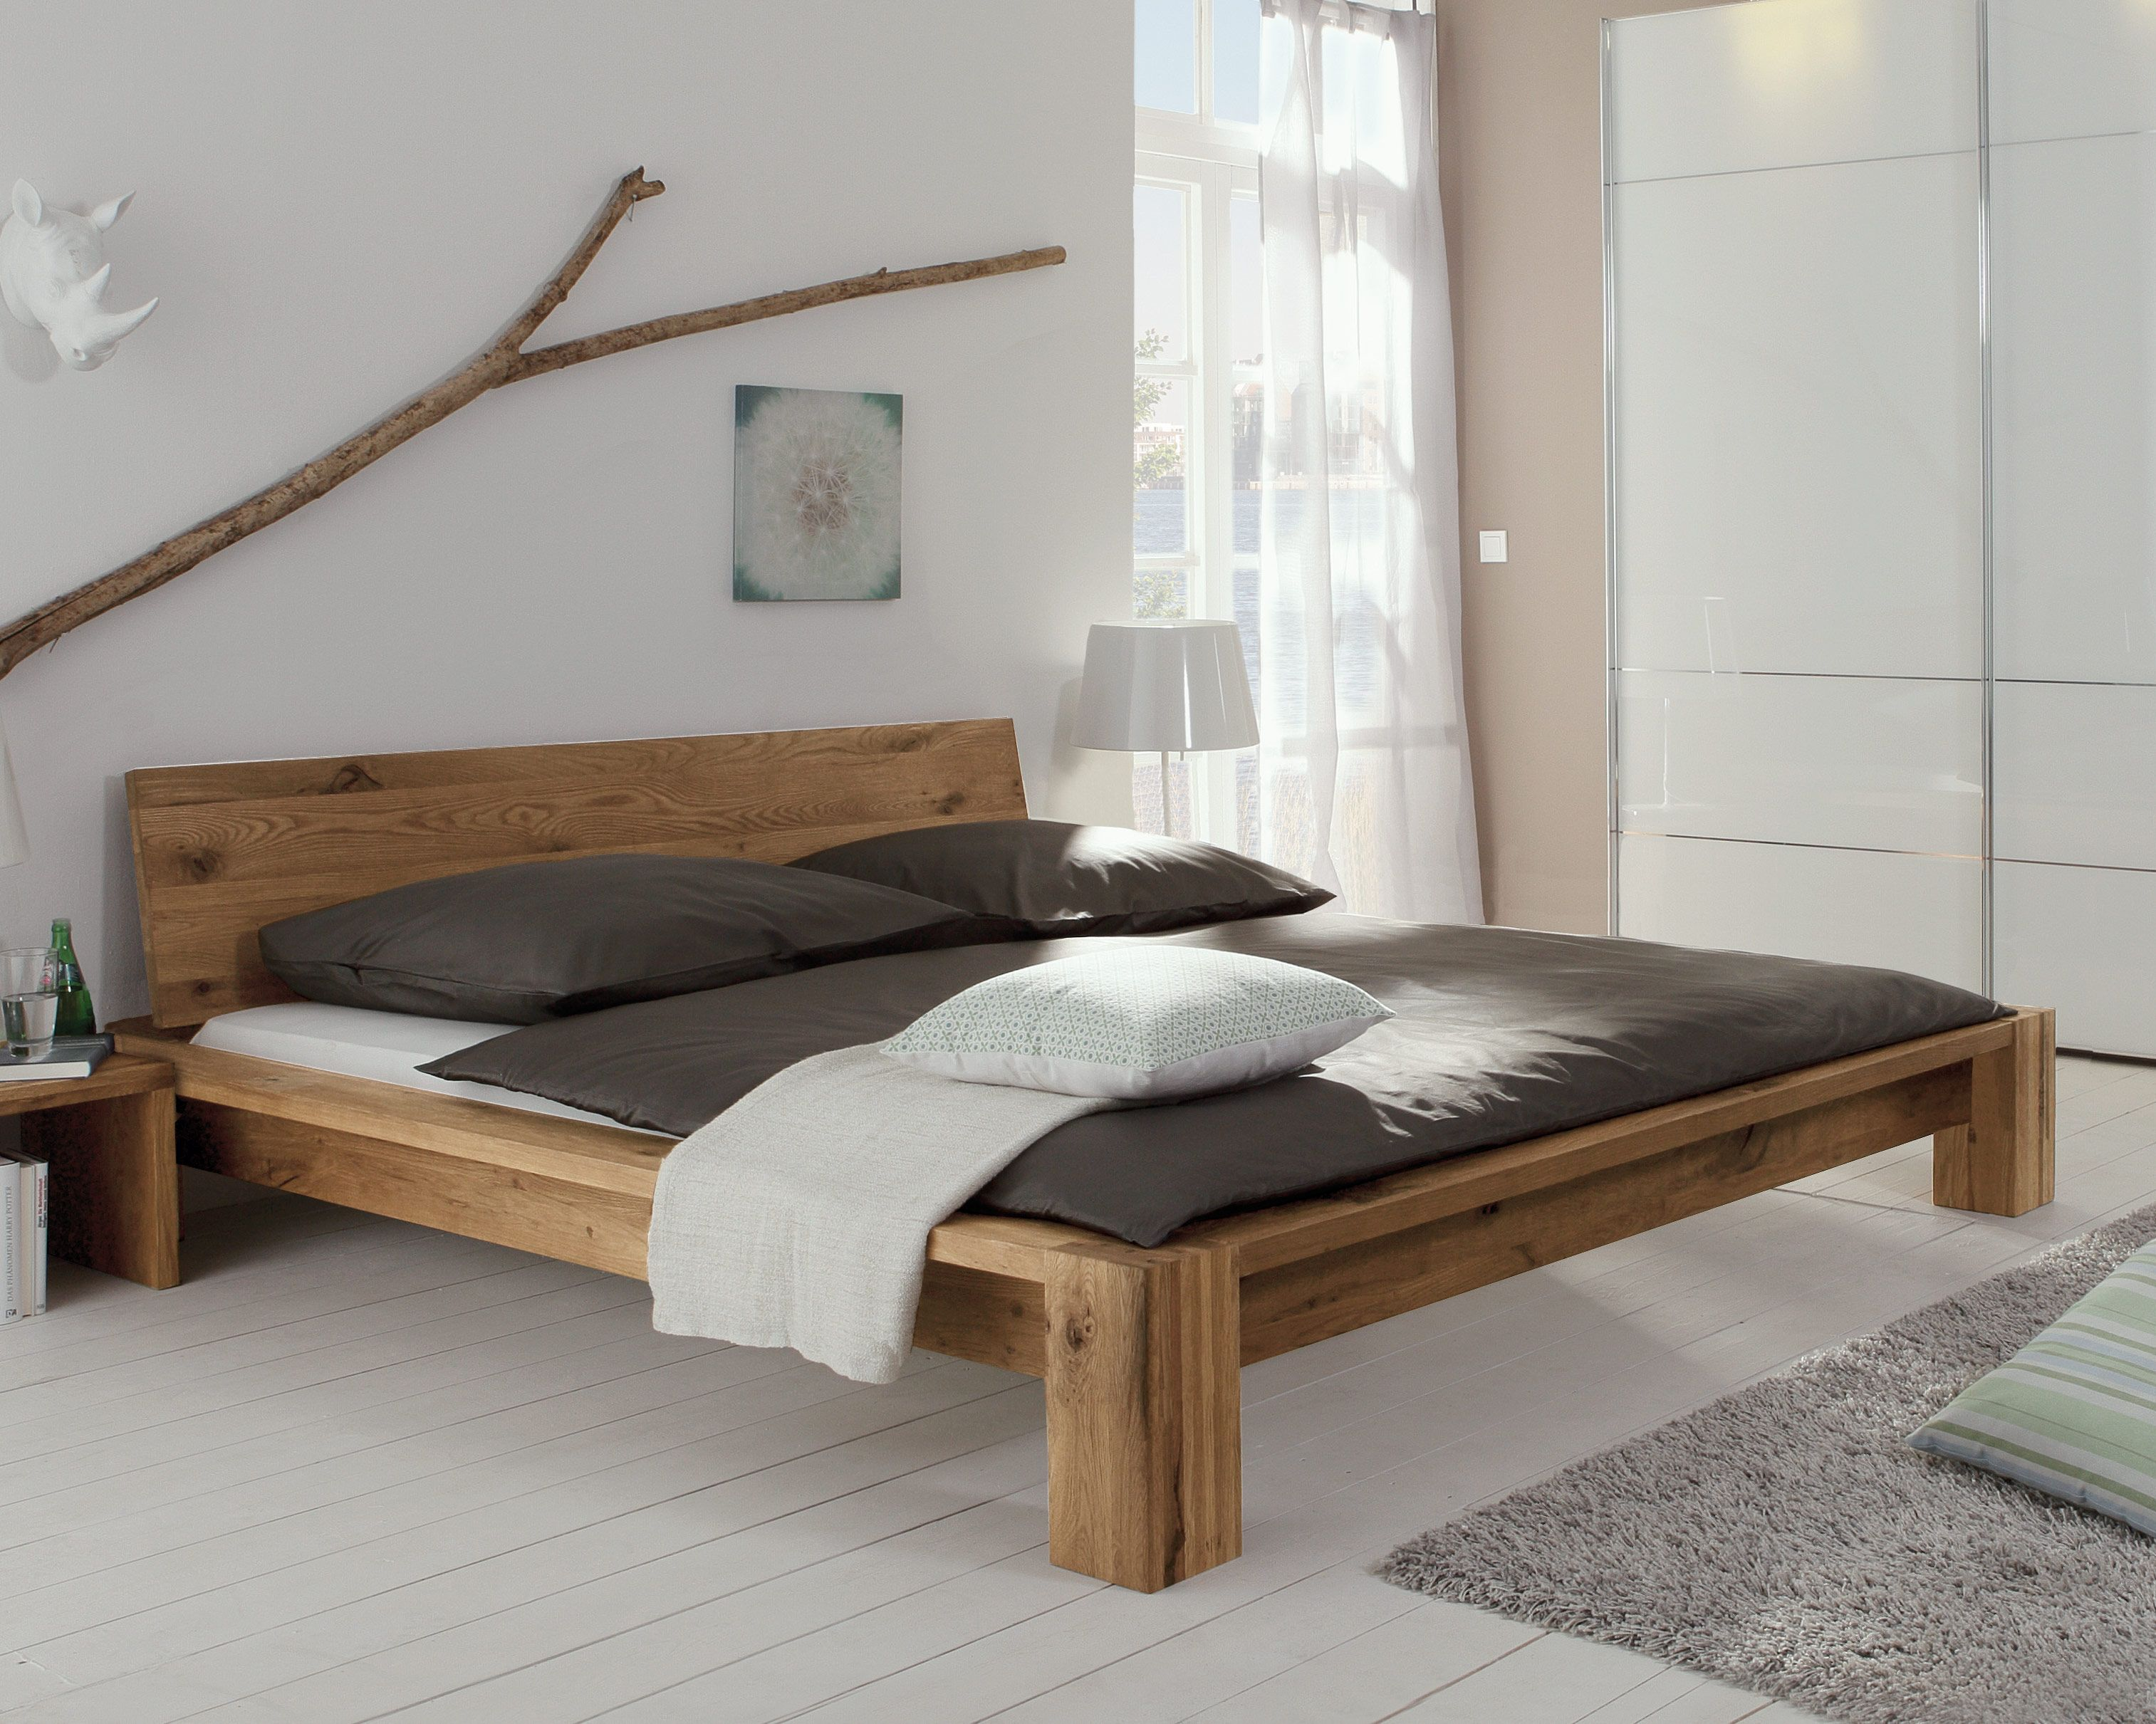 bett perugia in 2019 massivholz welt bett bett holz und schlafzimmer. Black Bedroom Furniture Sets. Home Design Ideas